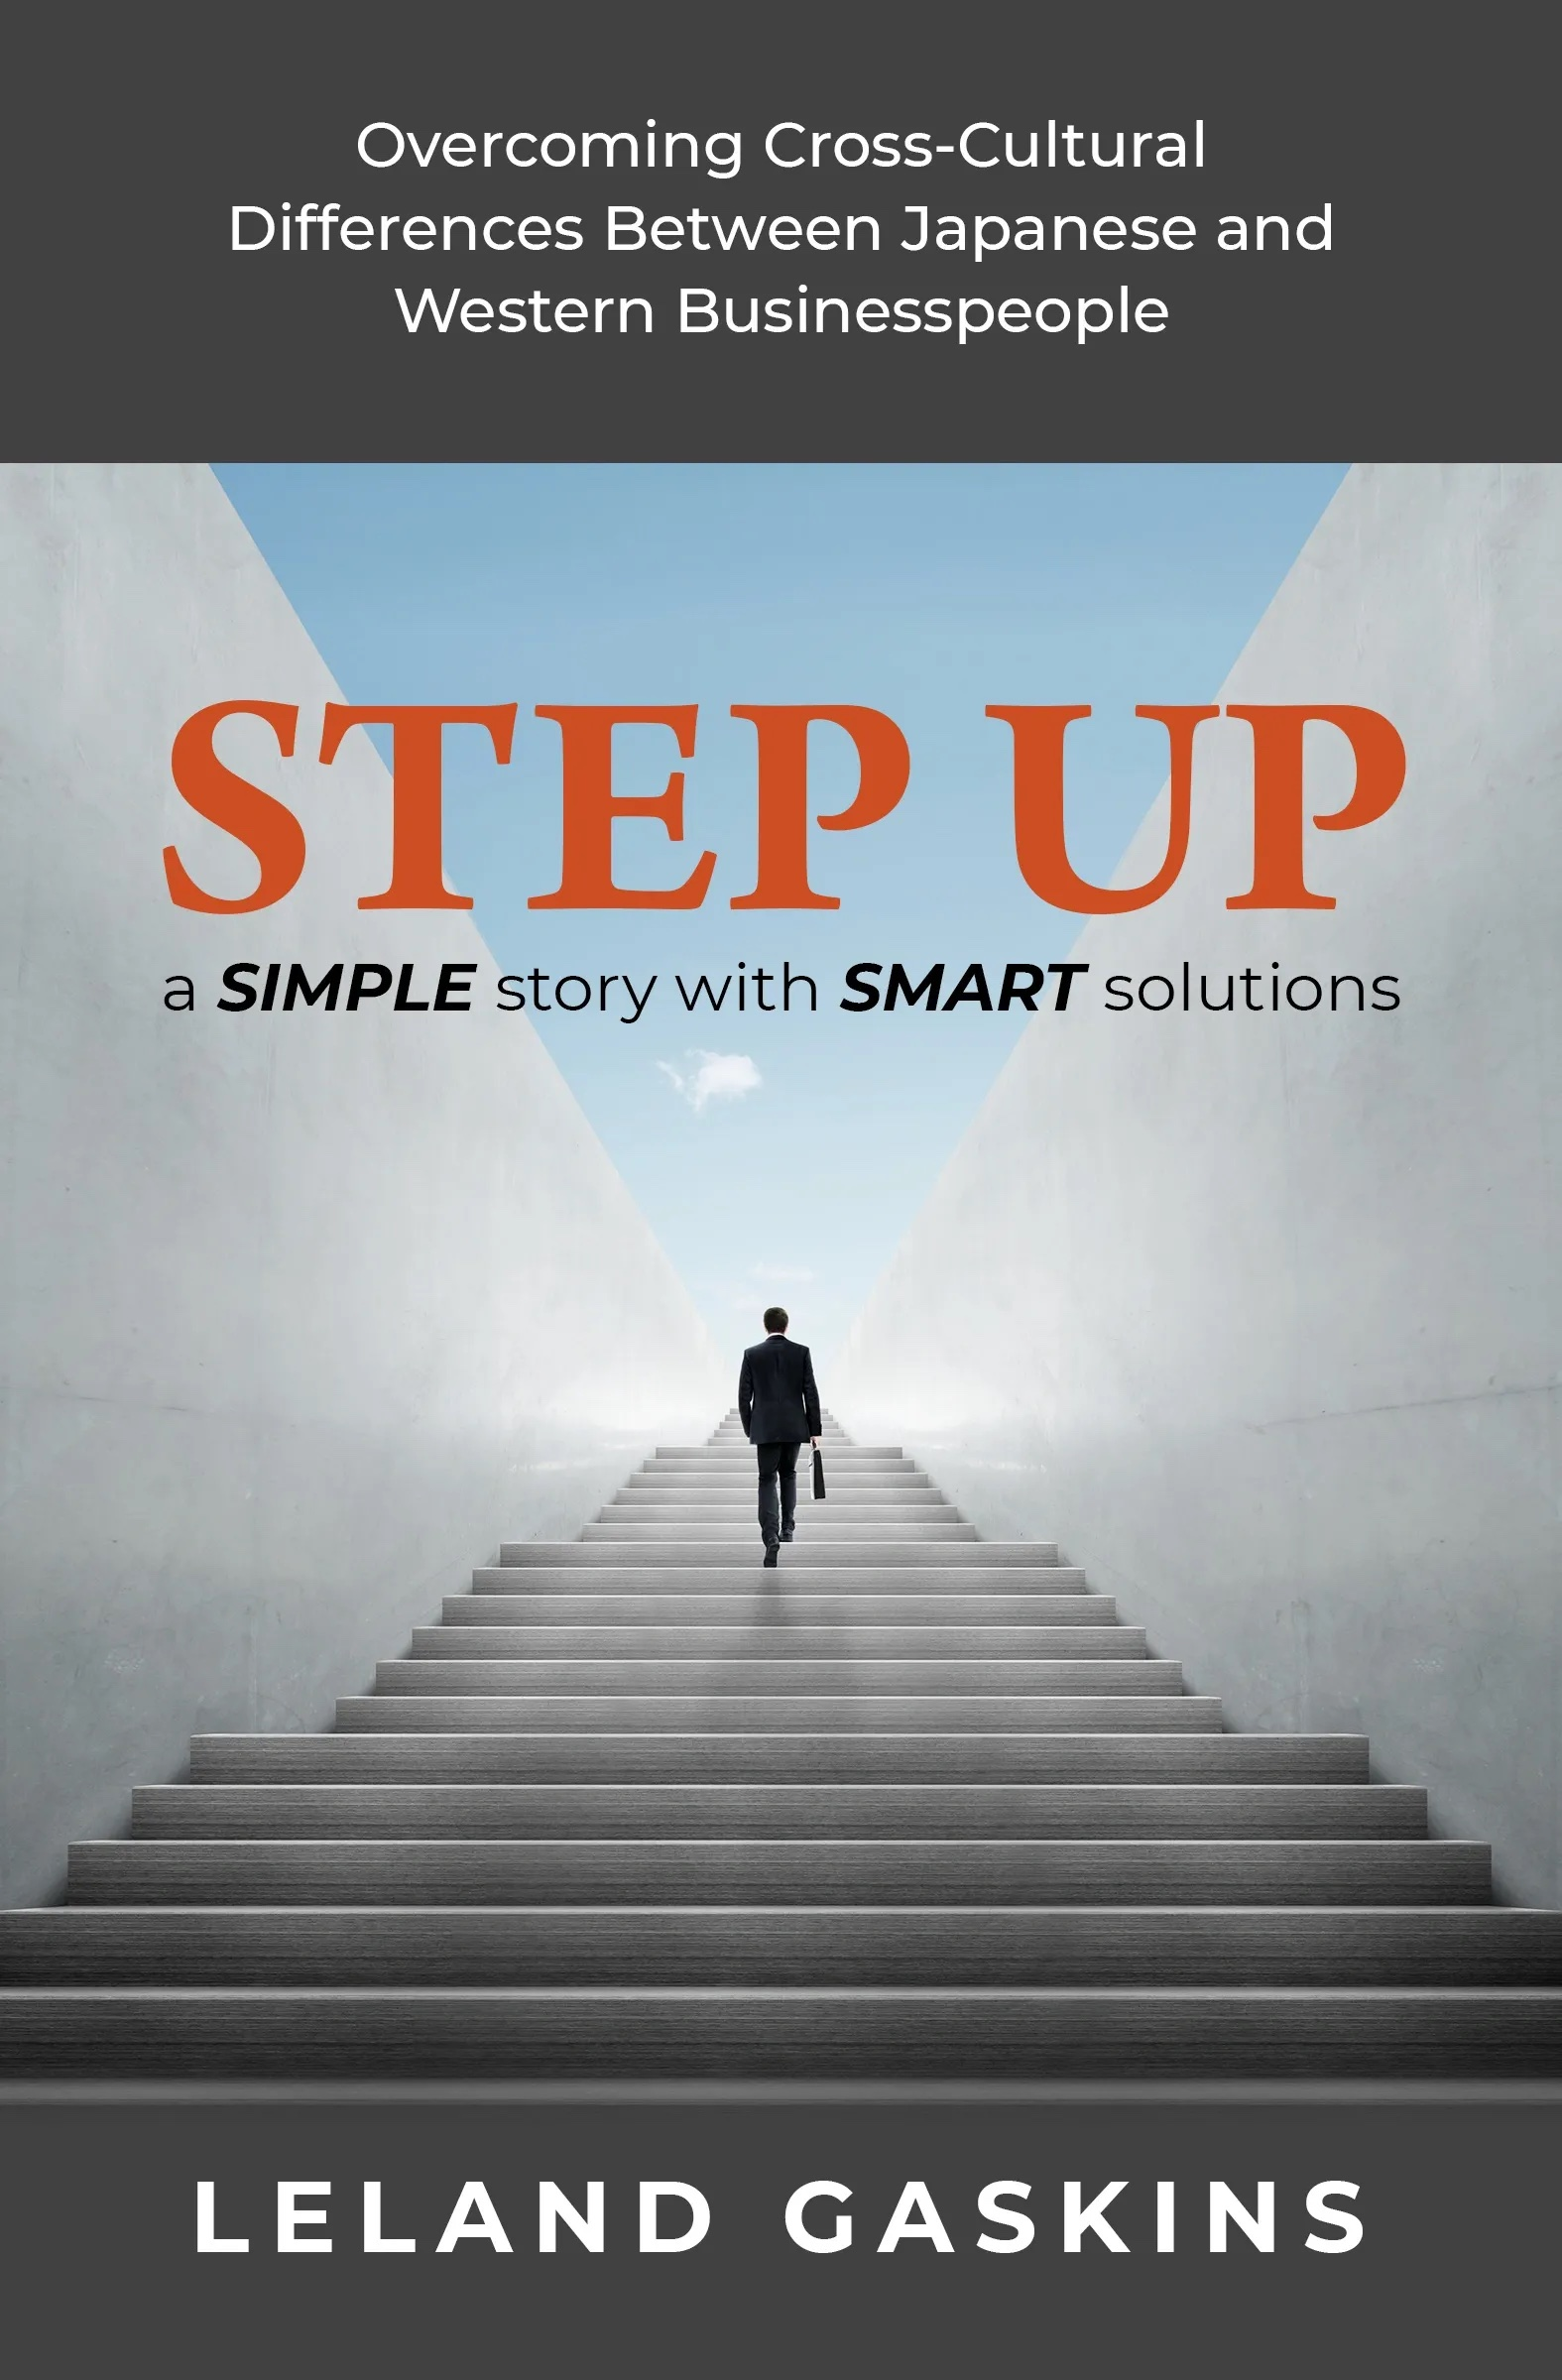 Step Up By Leland Gaskins: Overcoming Cultural Differences in Japan